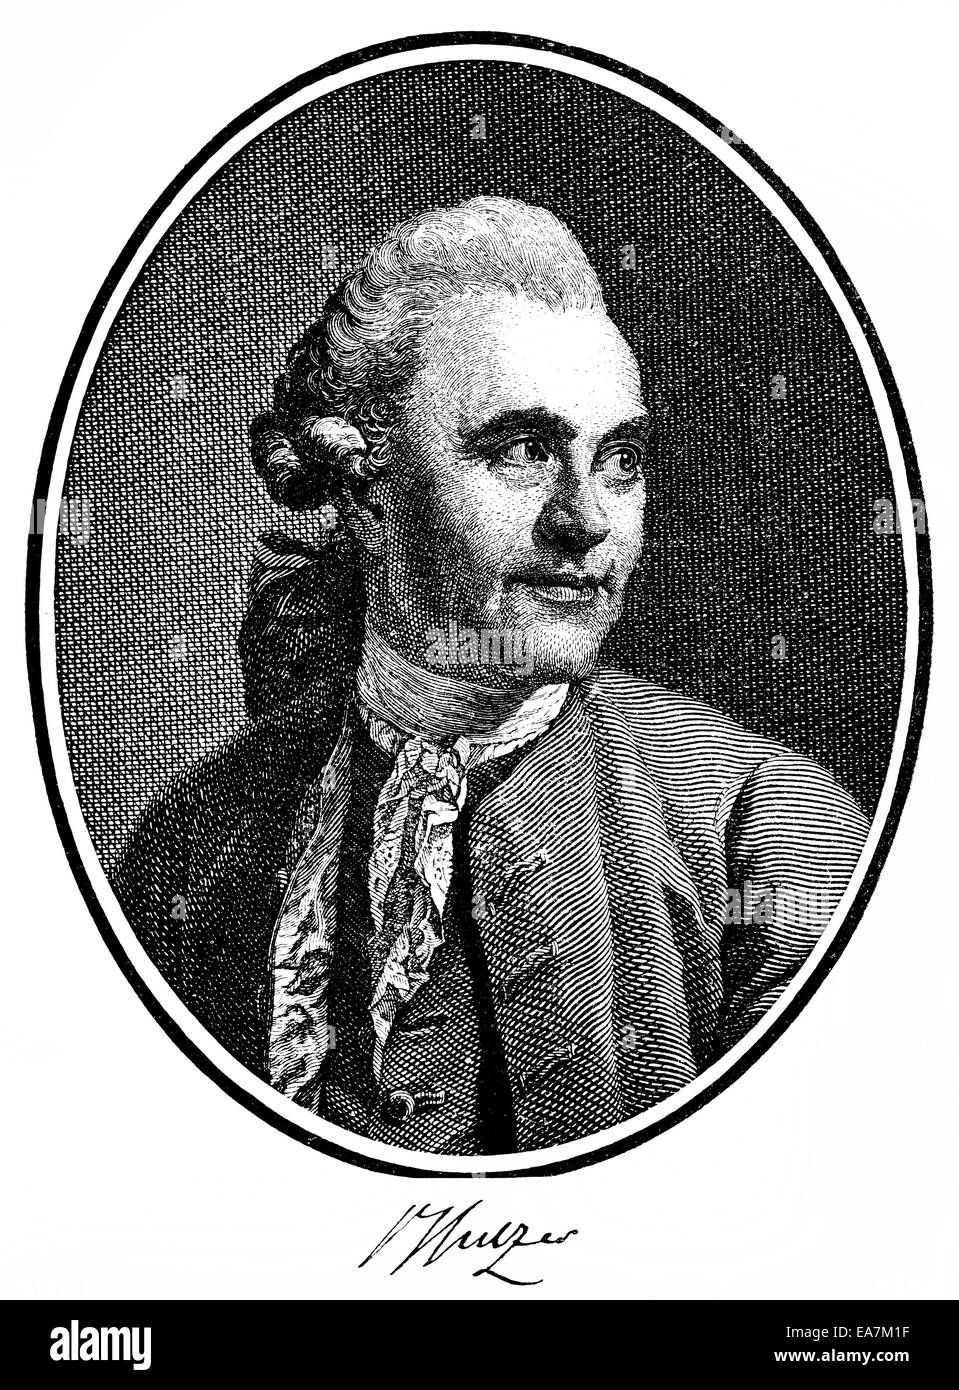 Johann Georg Sulzer, 1720-1779, a Swiss theologian and philosopher of the Enlightenment, Portait von Johann Georg - Stock Image